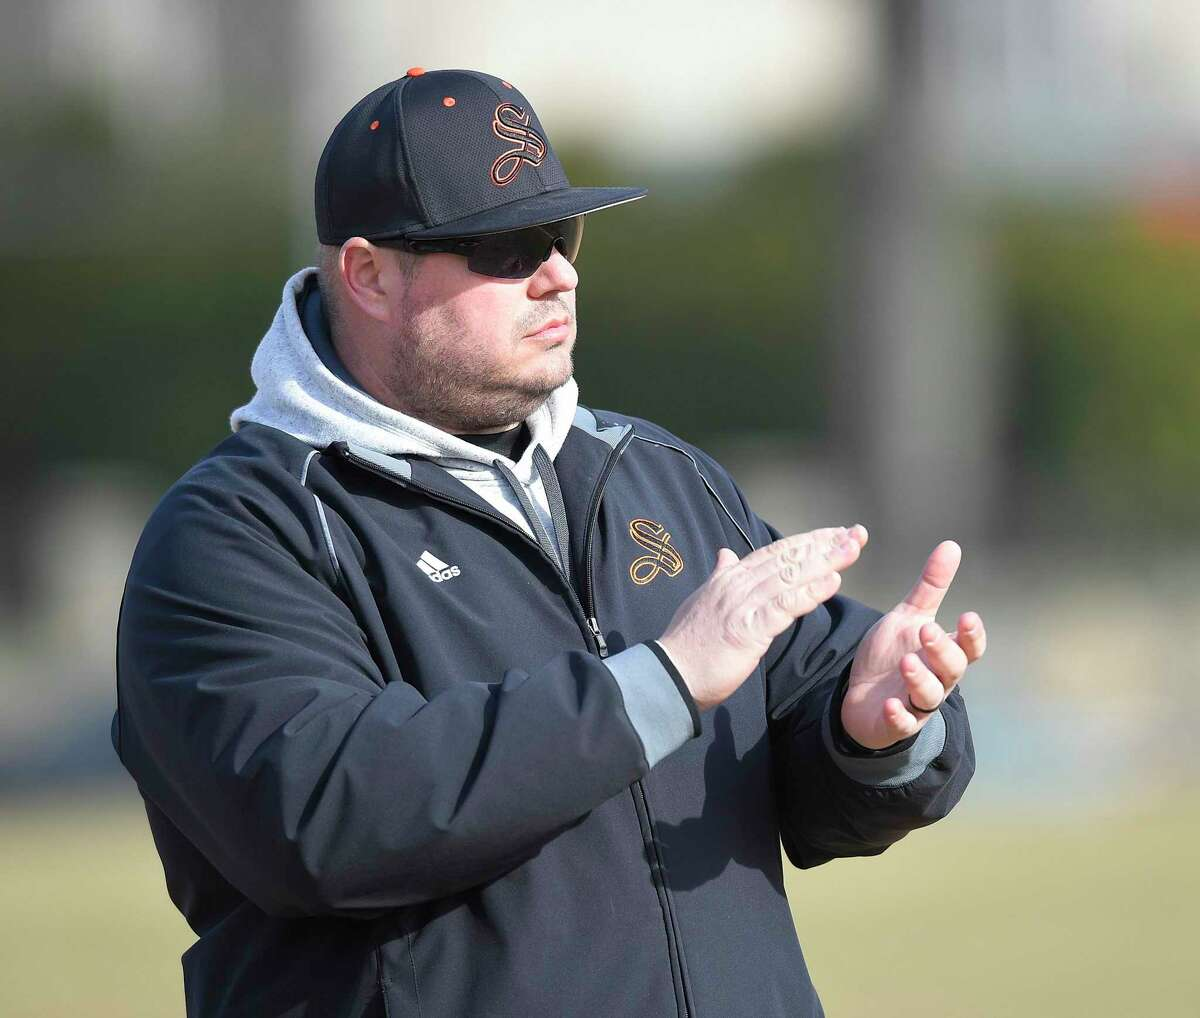 Stamford baseball coach Rit Lacomis applauds the action during a scrimmage last March.